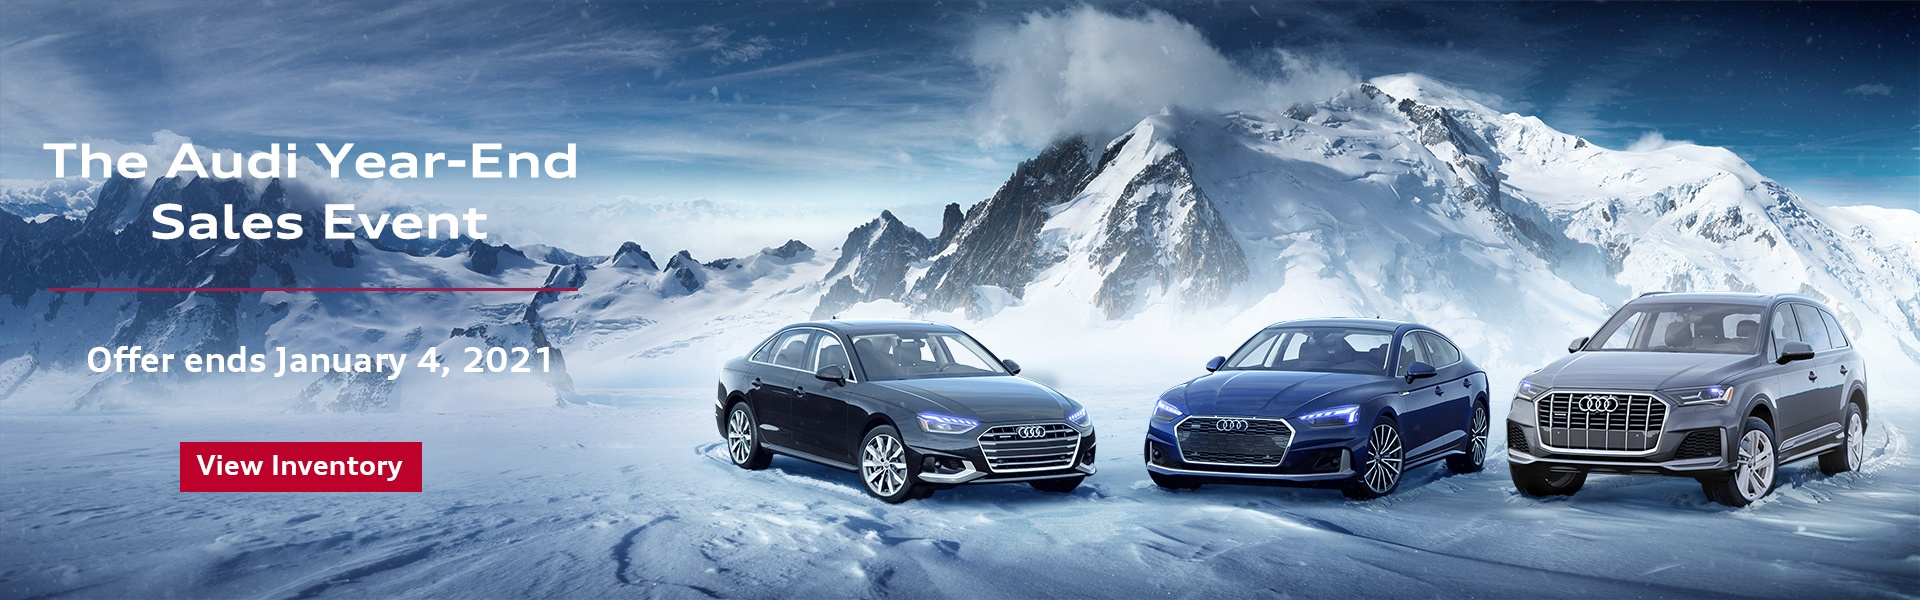 Audi Year-End Sales Event 2020